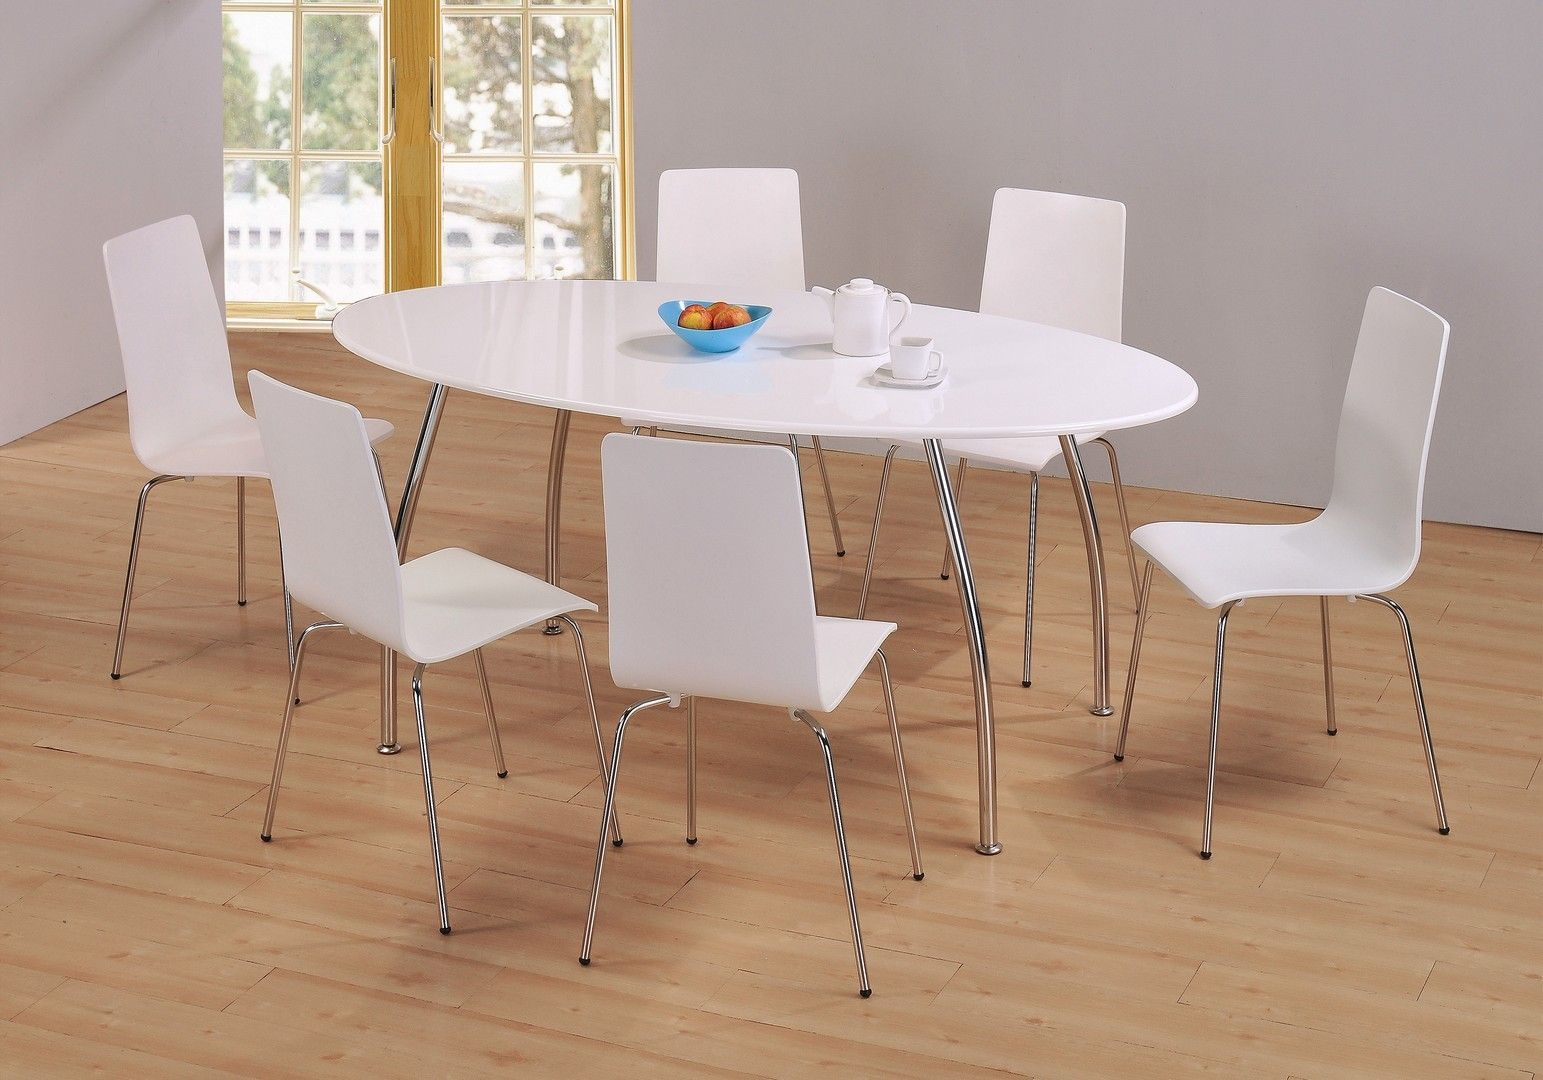 Heartlands Furniture Fiji White High Gloss Oval Dining Table With 6 Chair Part 42